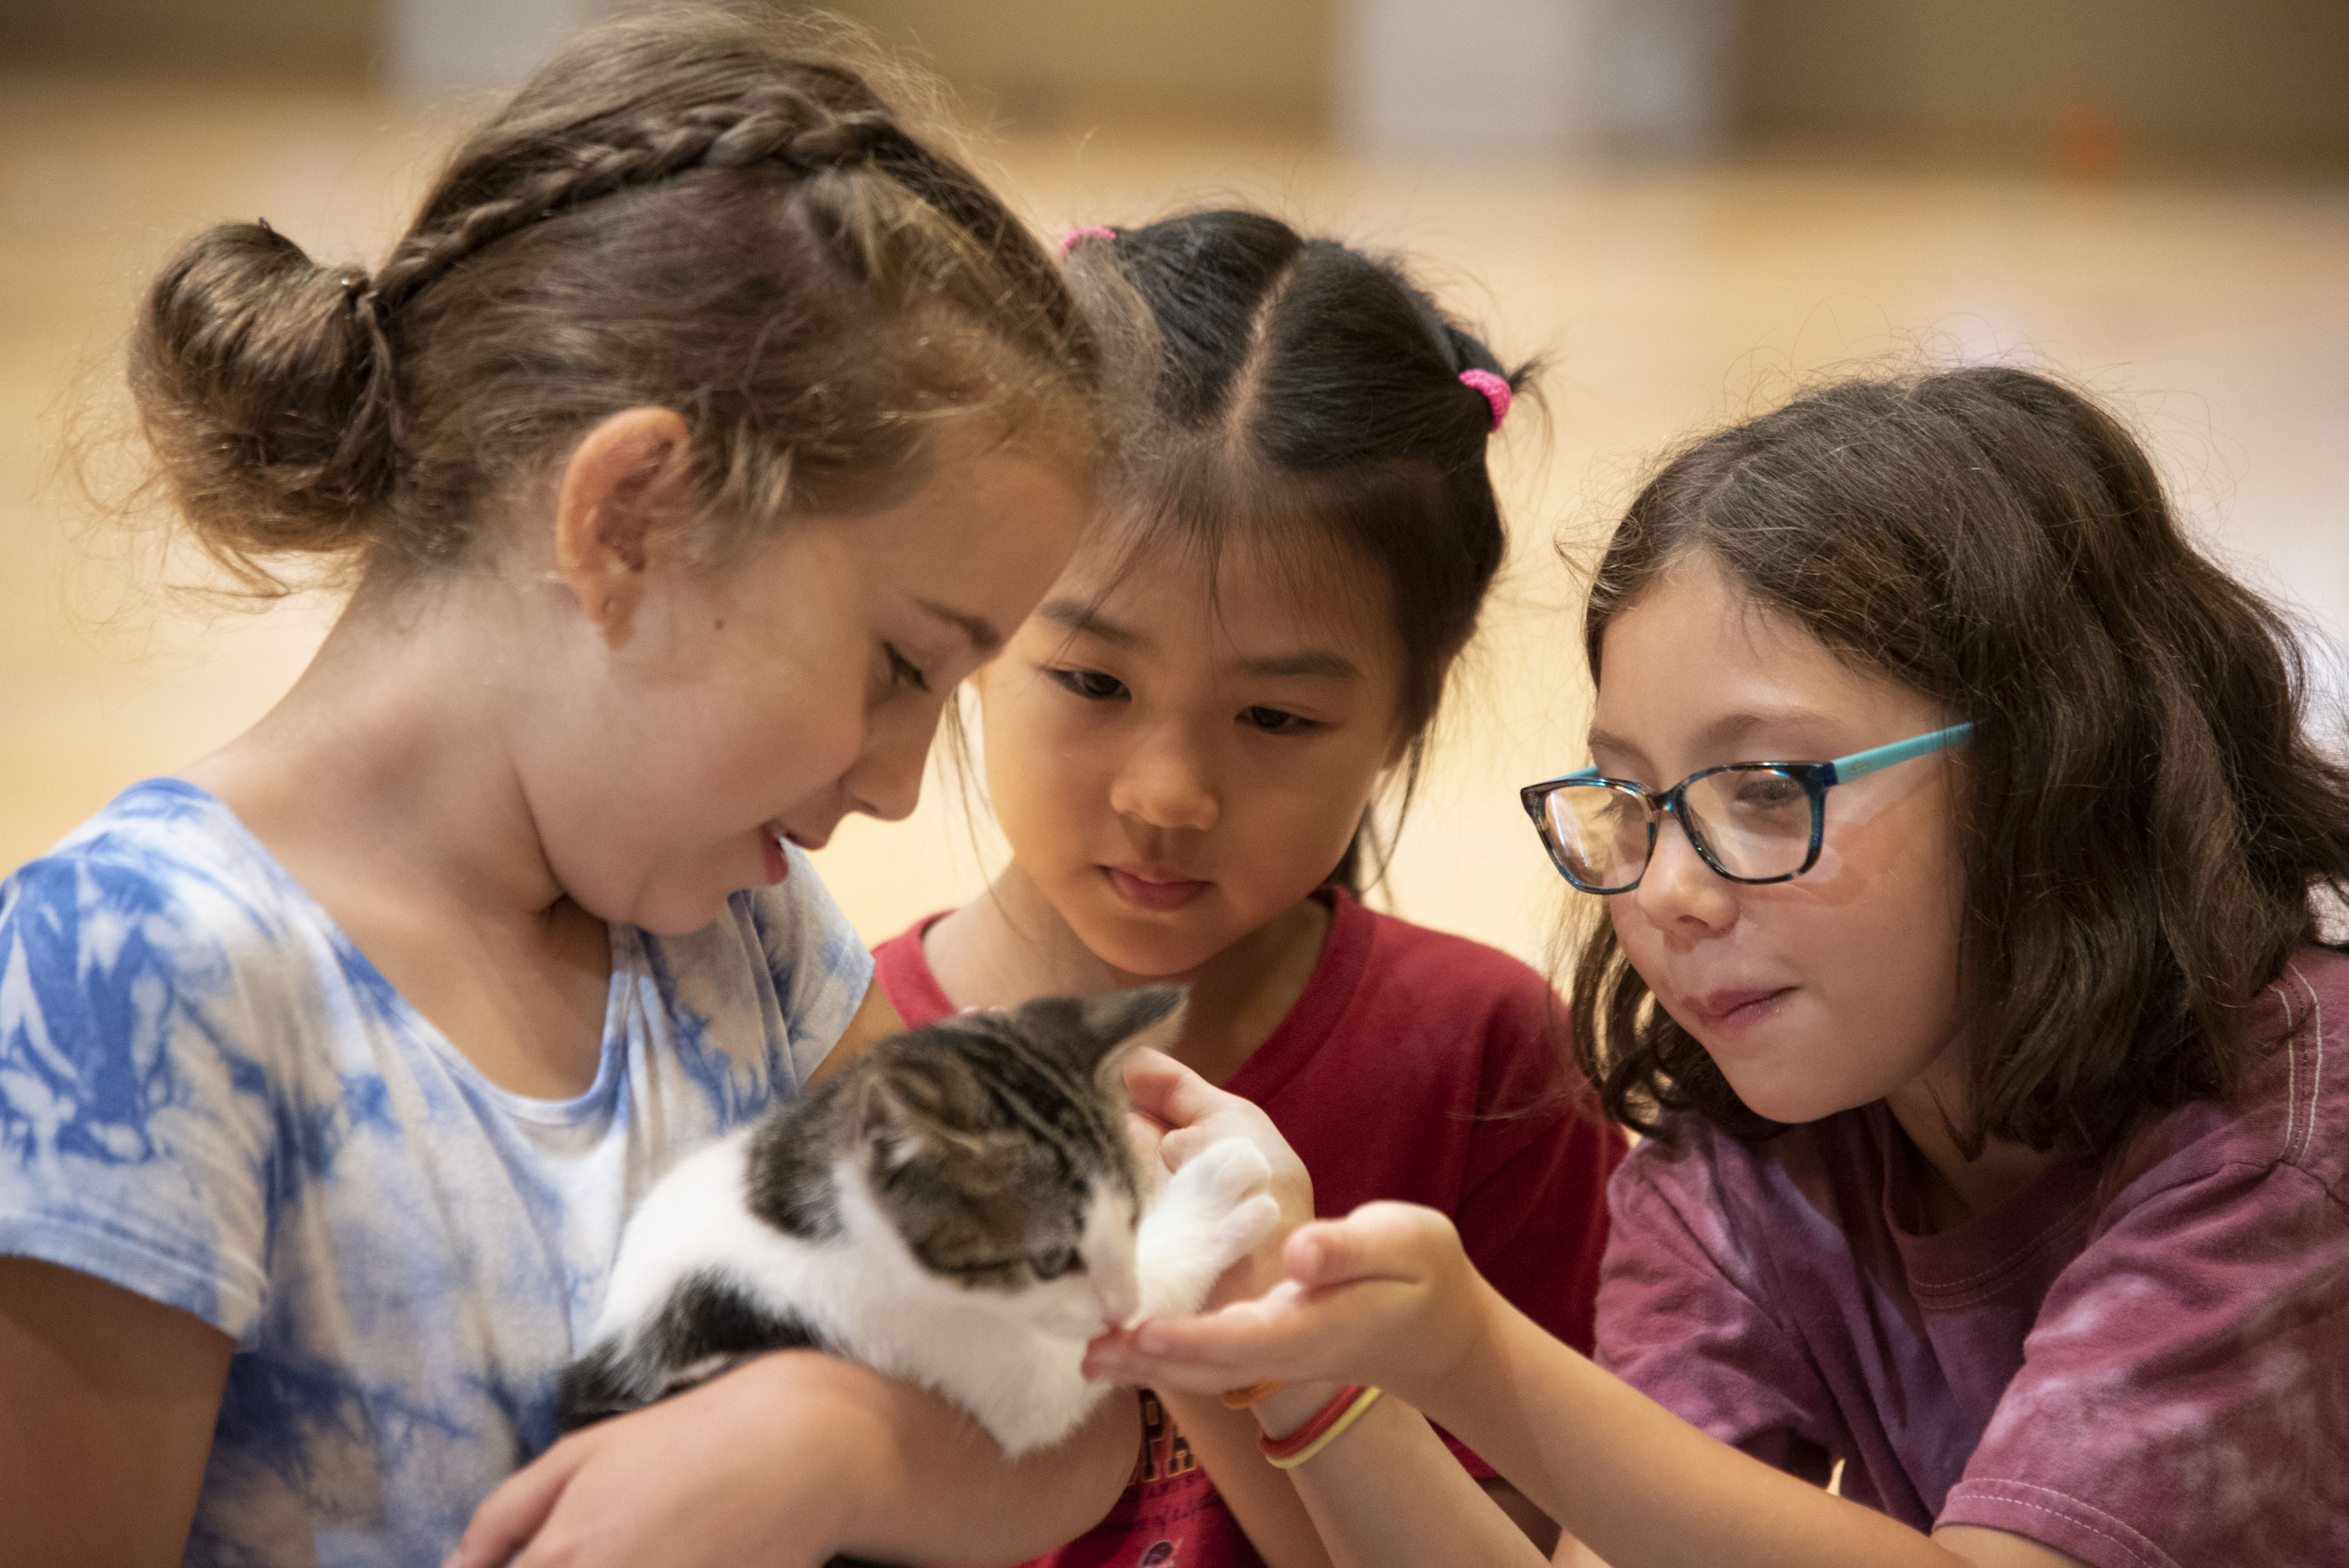 Three young students hold and observe a kitten